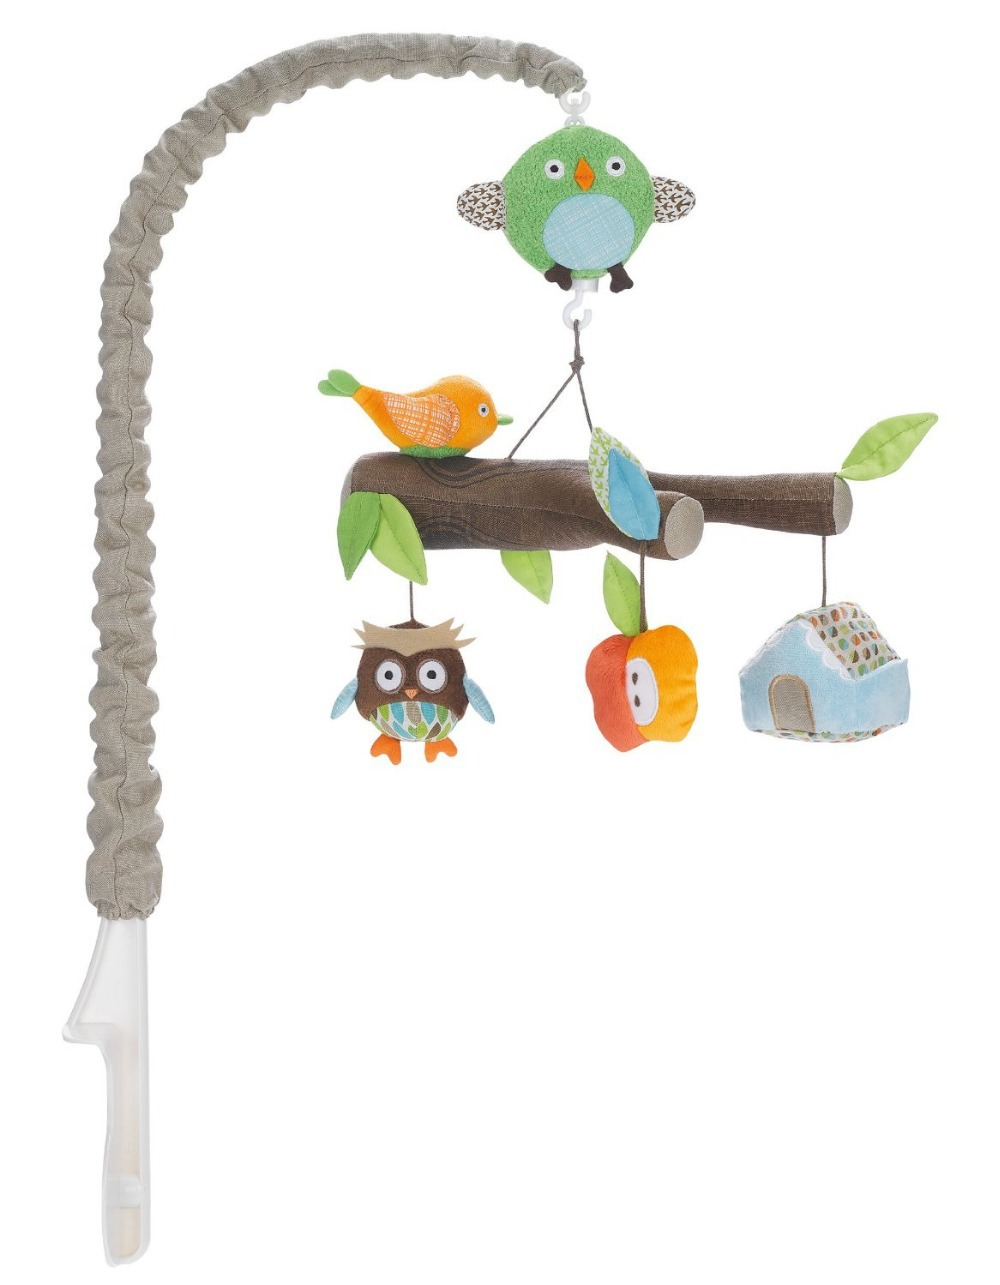 Crib music box for babies -  Forest Animal Mobile Bed Clockwork Music Box Holder Baby Bed Bell Baby Bed Plush Toy Owl